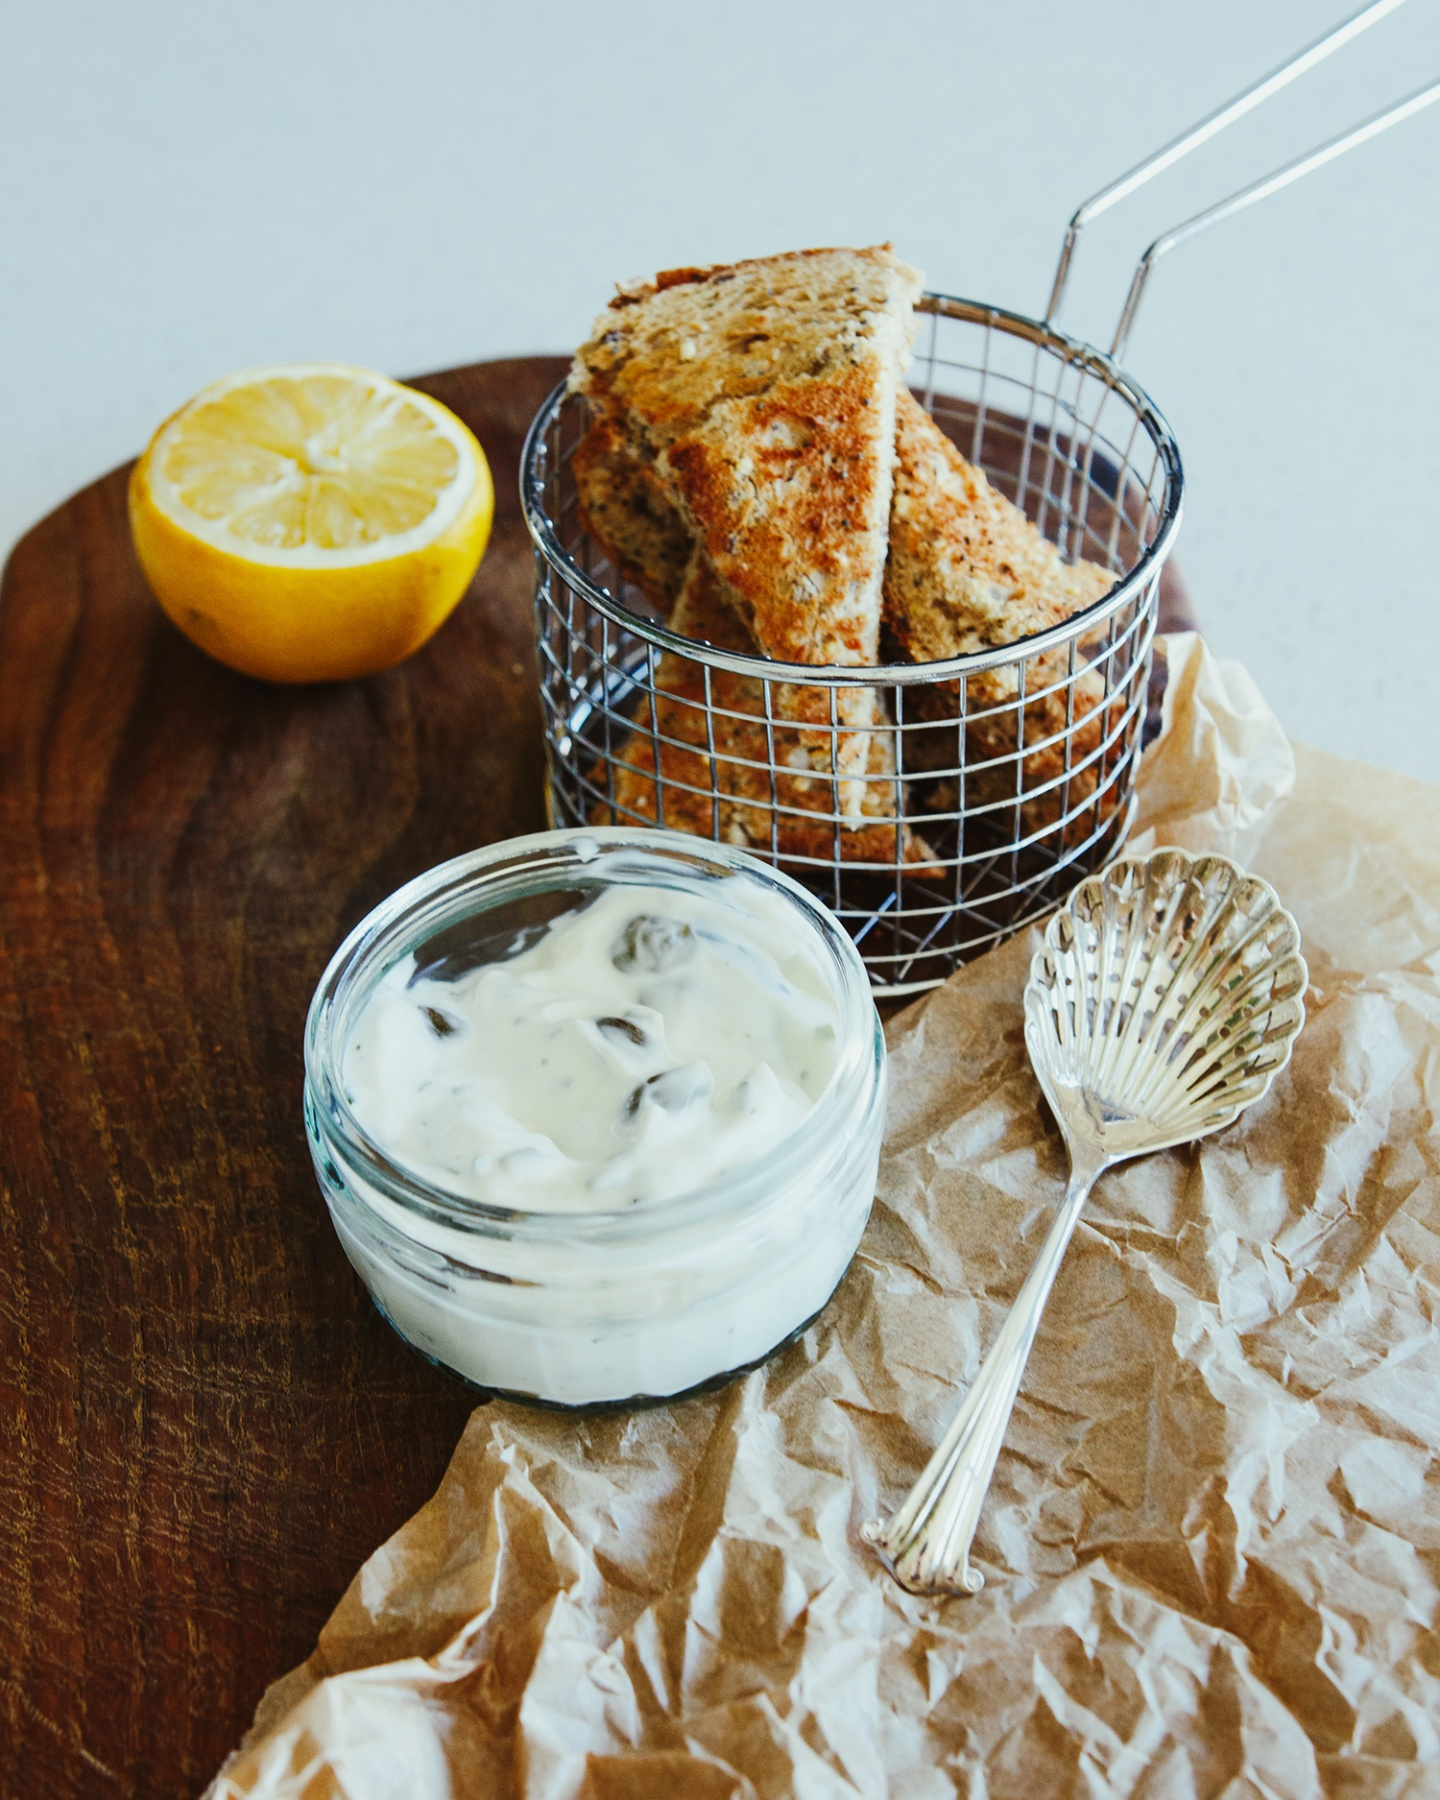 Yoghurt dip with bread